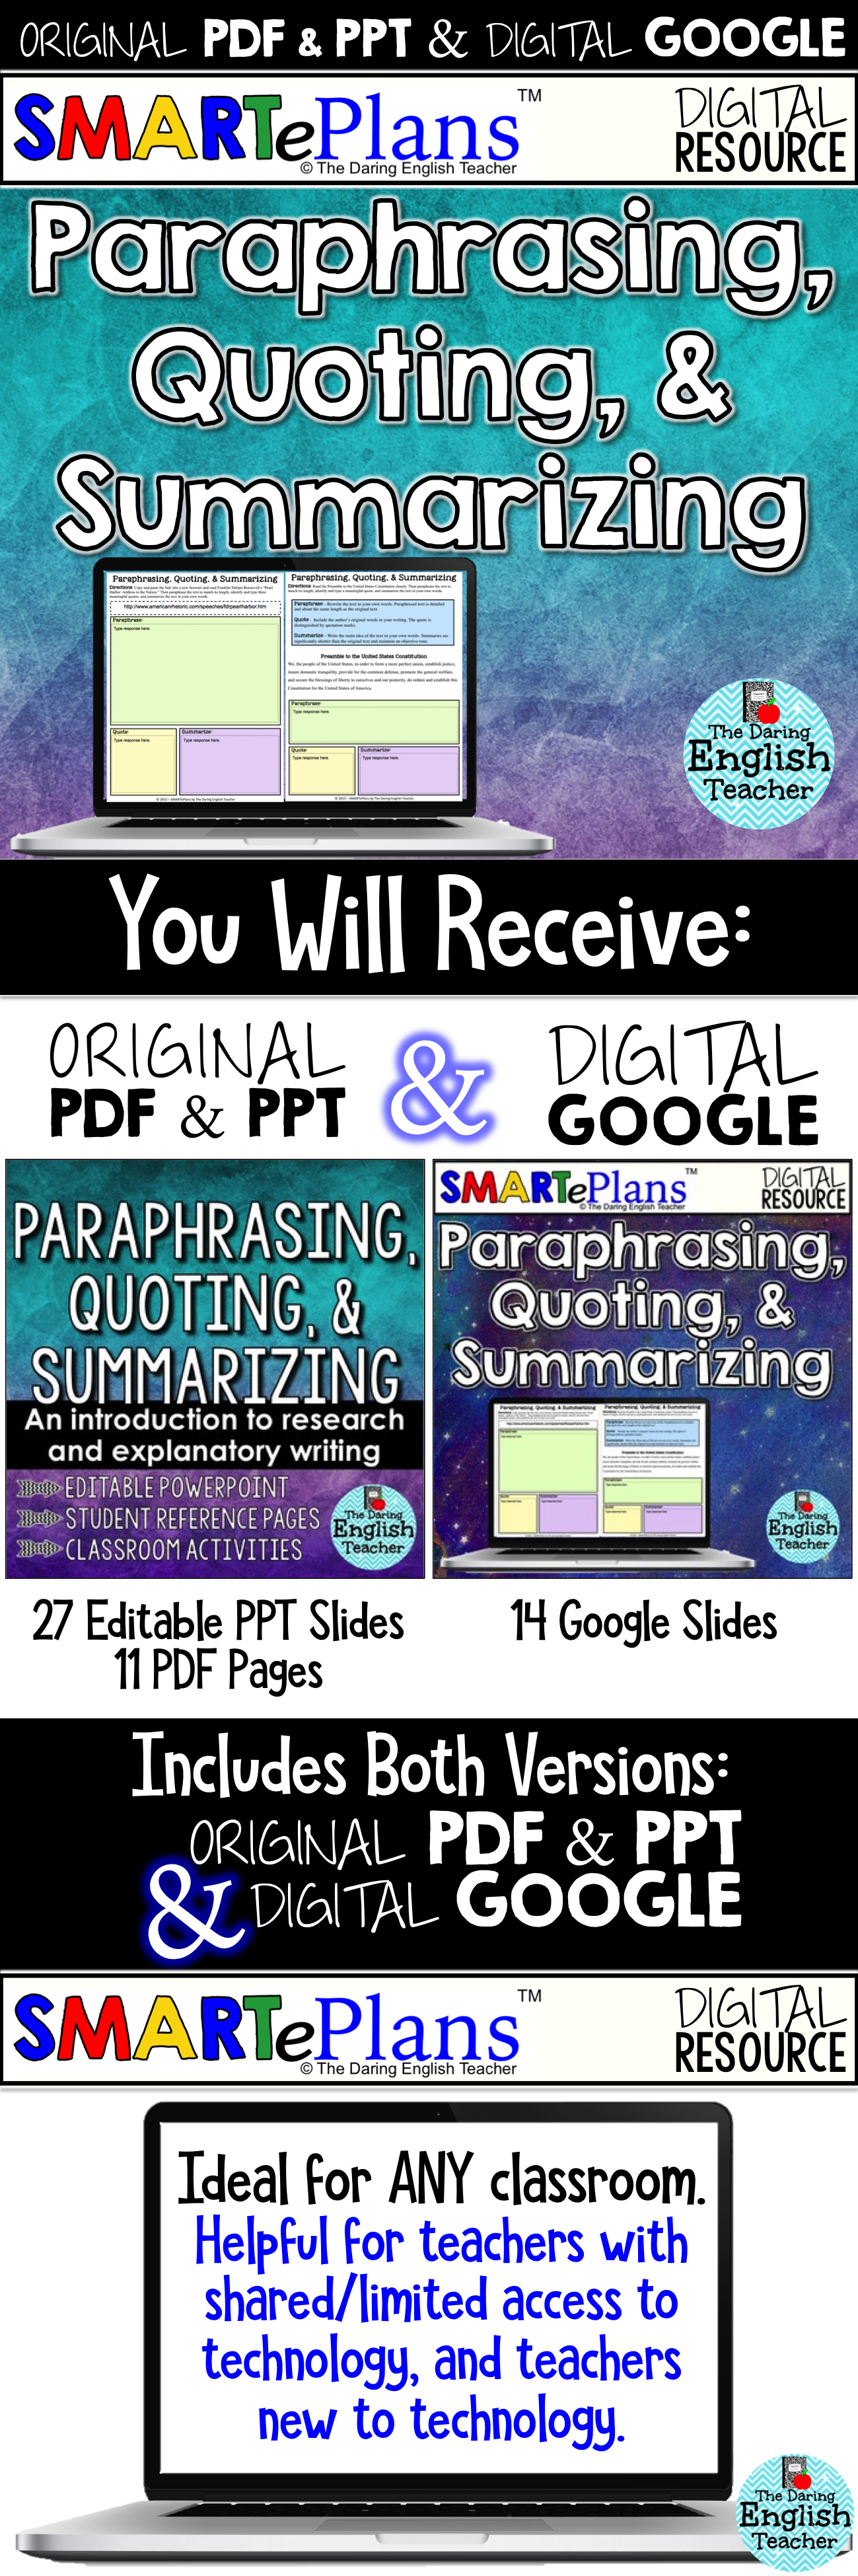 Teaching Secondary English Language Art Student How To Properly Paraphrase Quote And Su Informational Text Google Drive Lessons Paraphrasing Summarizing Quoting Ppt Scientific Writing